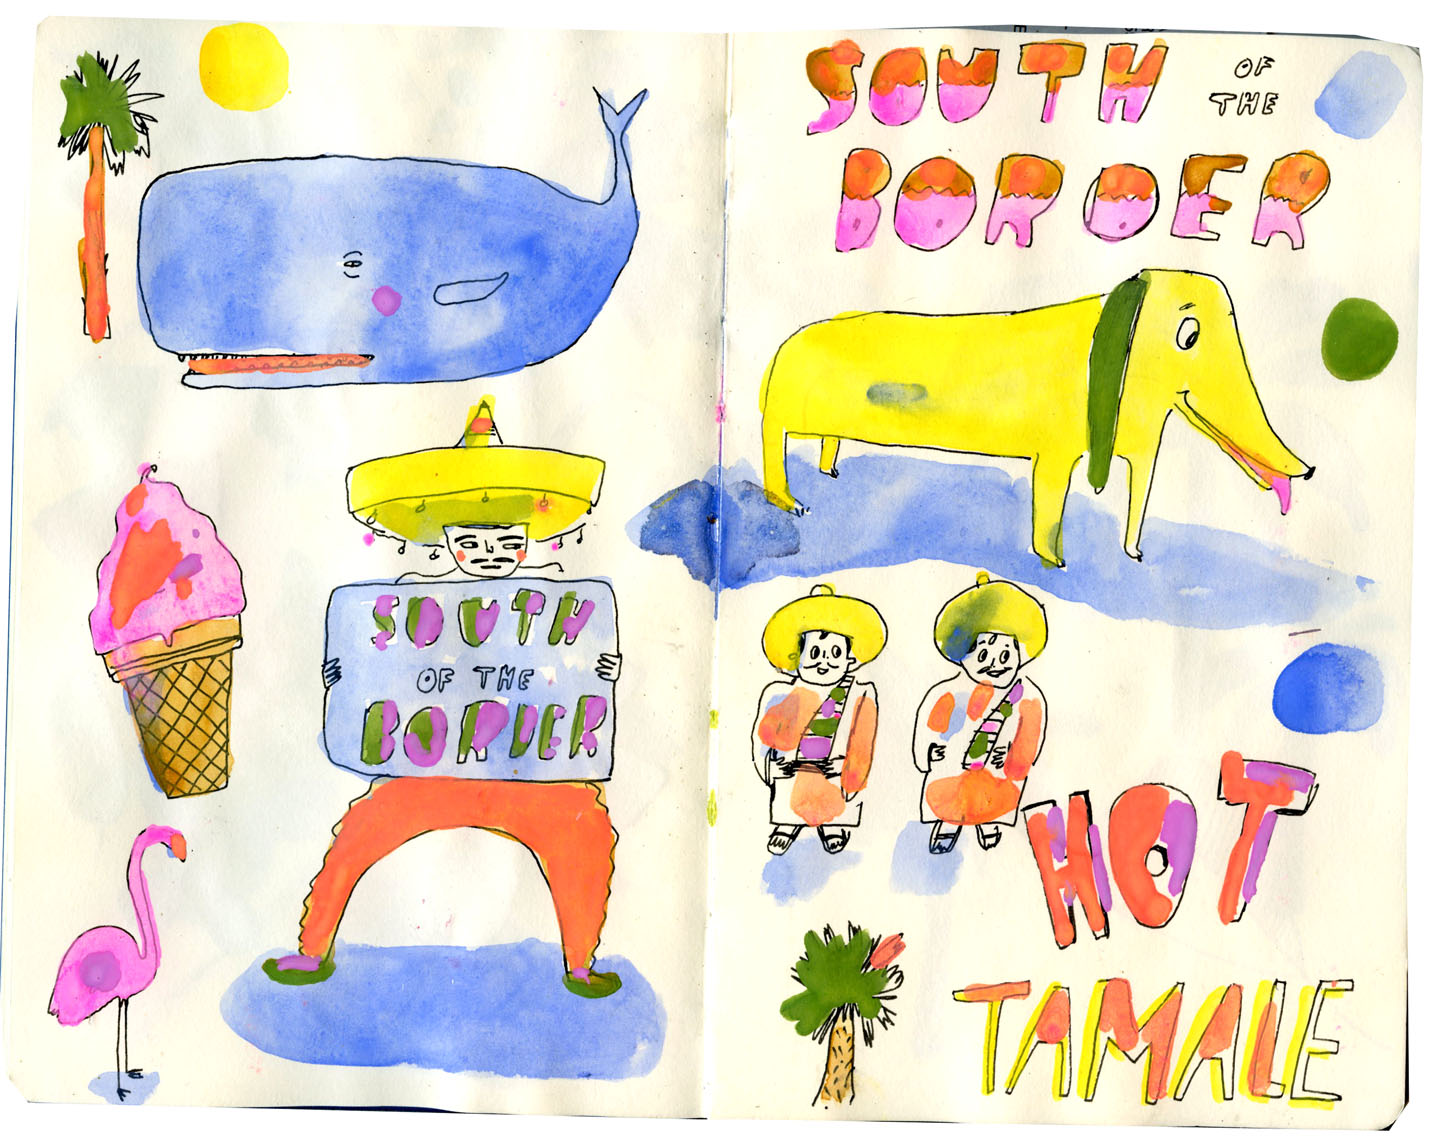 Souther of the Border sketchbook